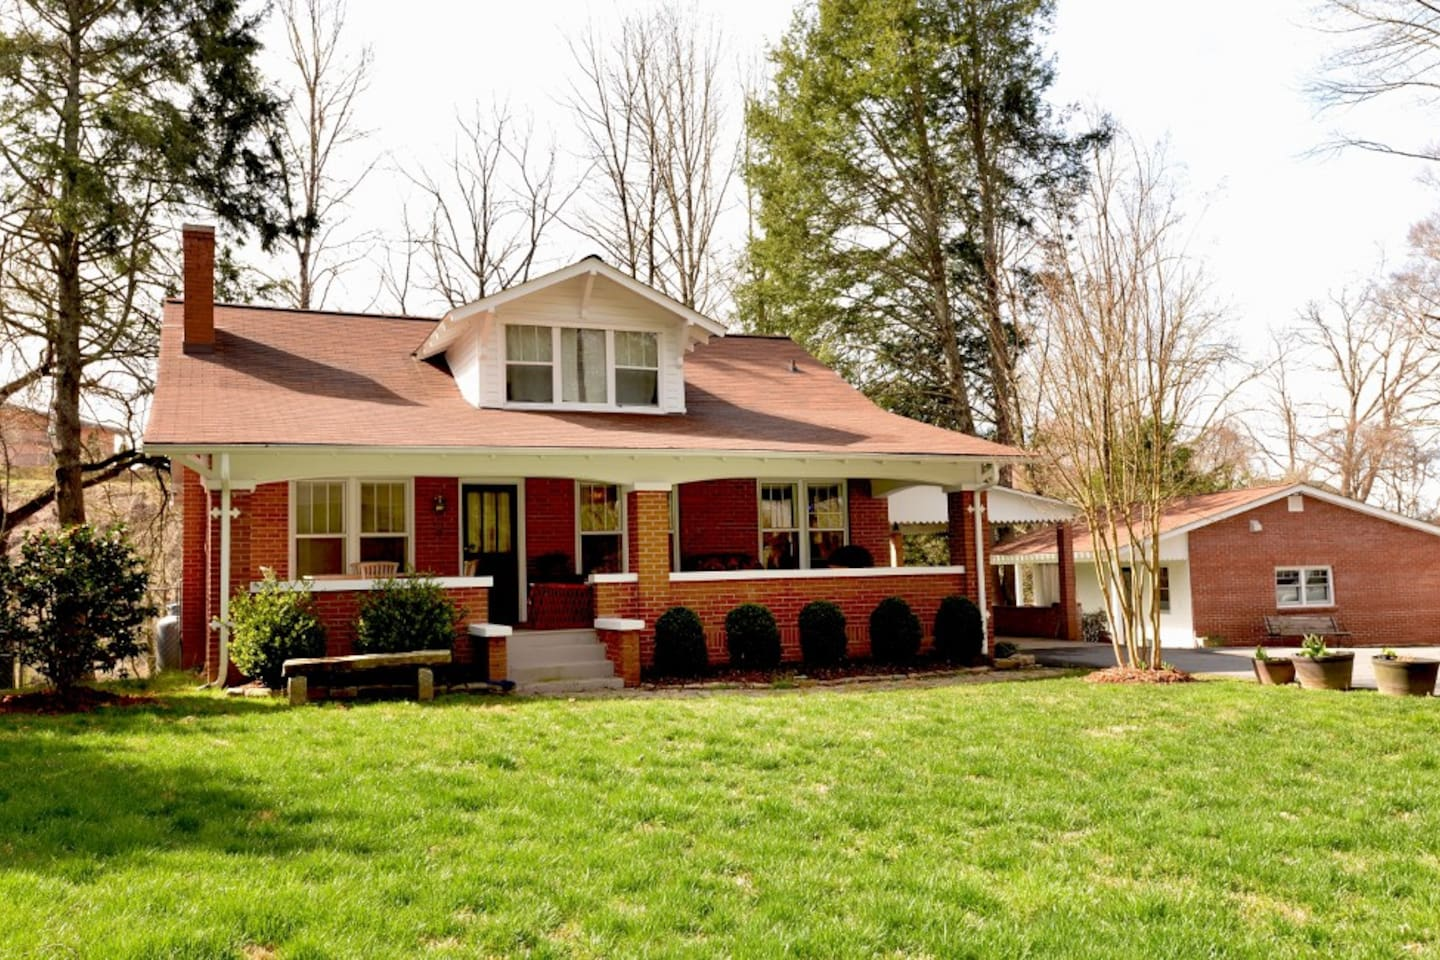 Beautiful restored 1939 Craftsman Bungalow.  The Main House sleeps 8 and the Cottage sleeps 4.